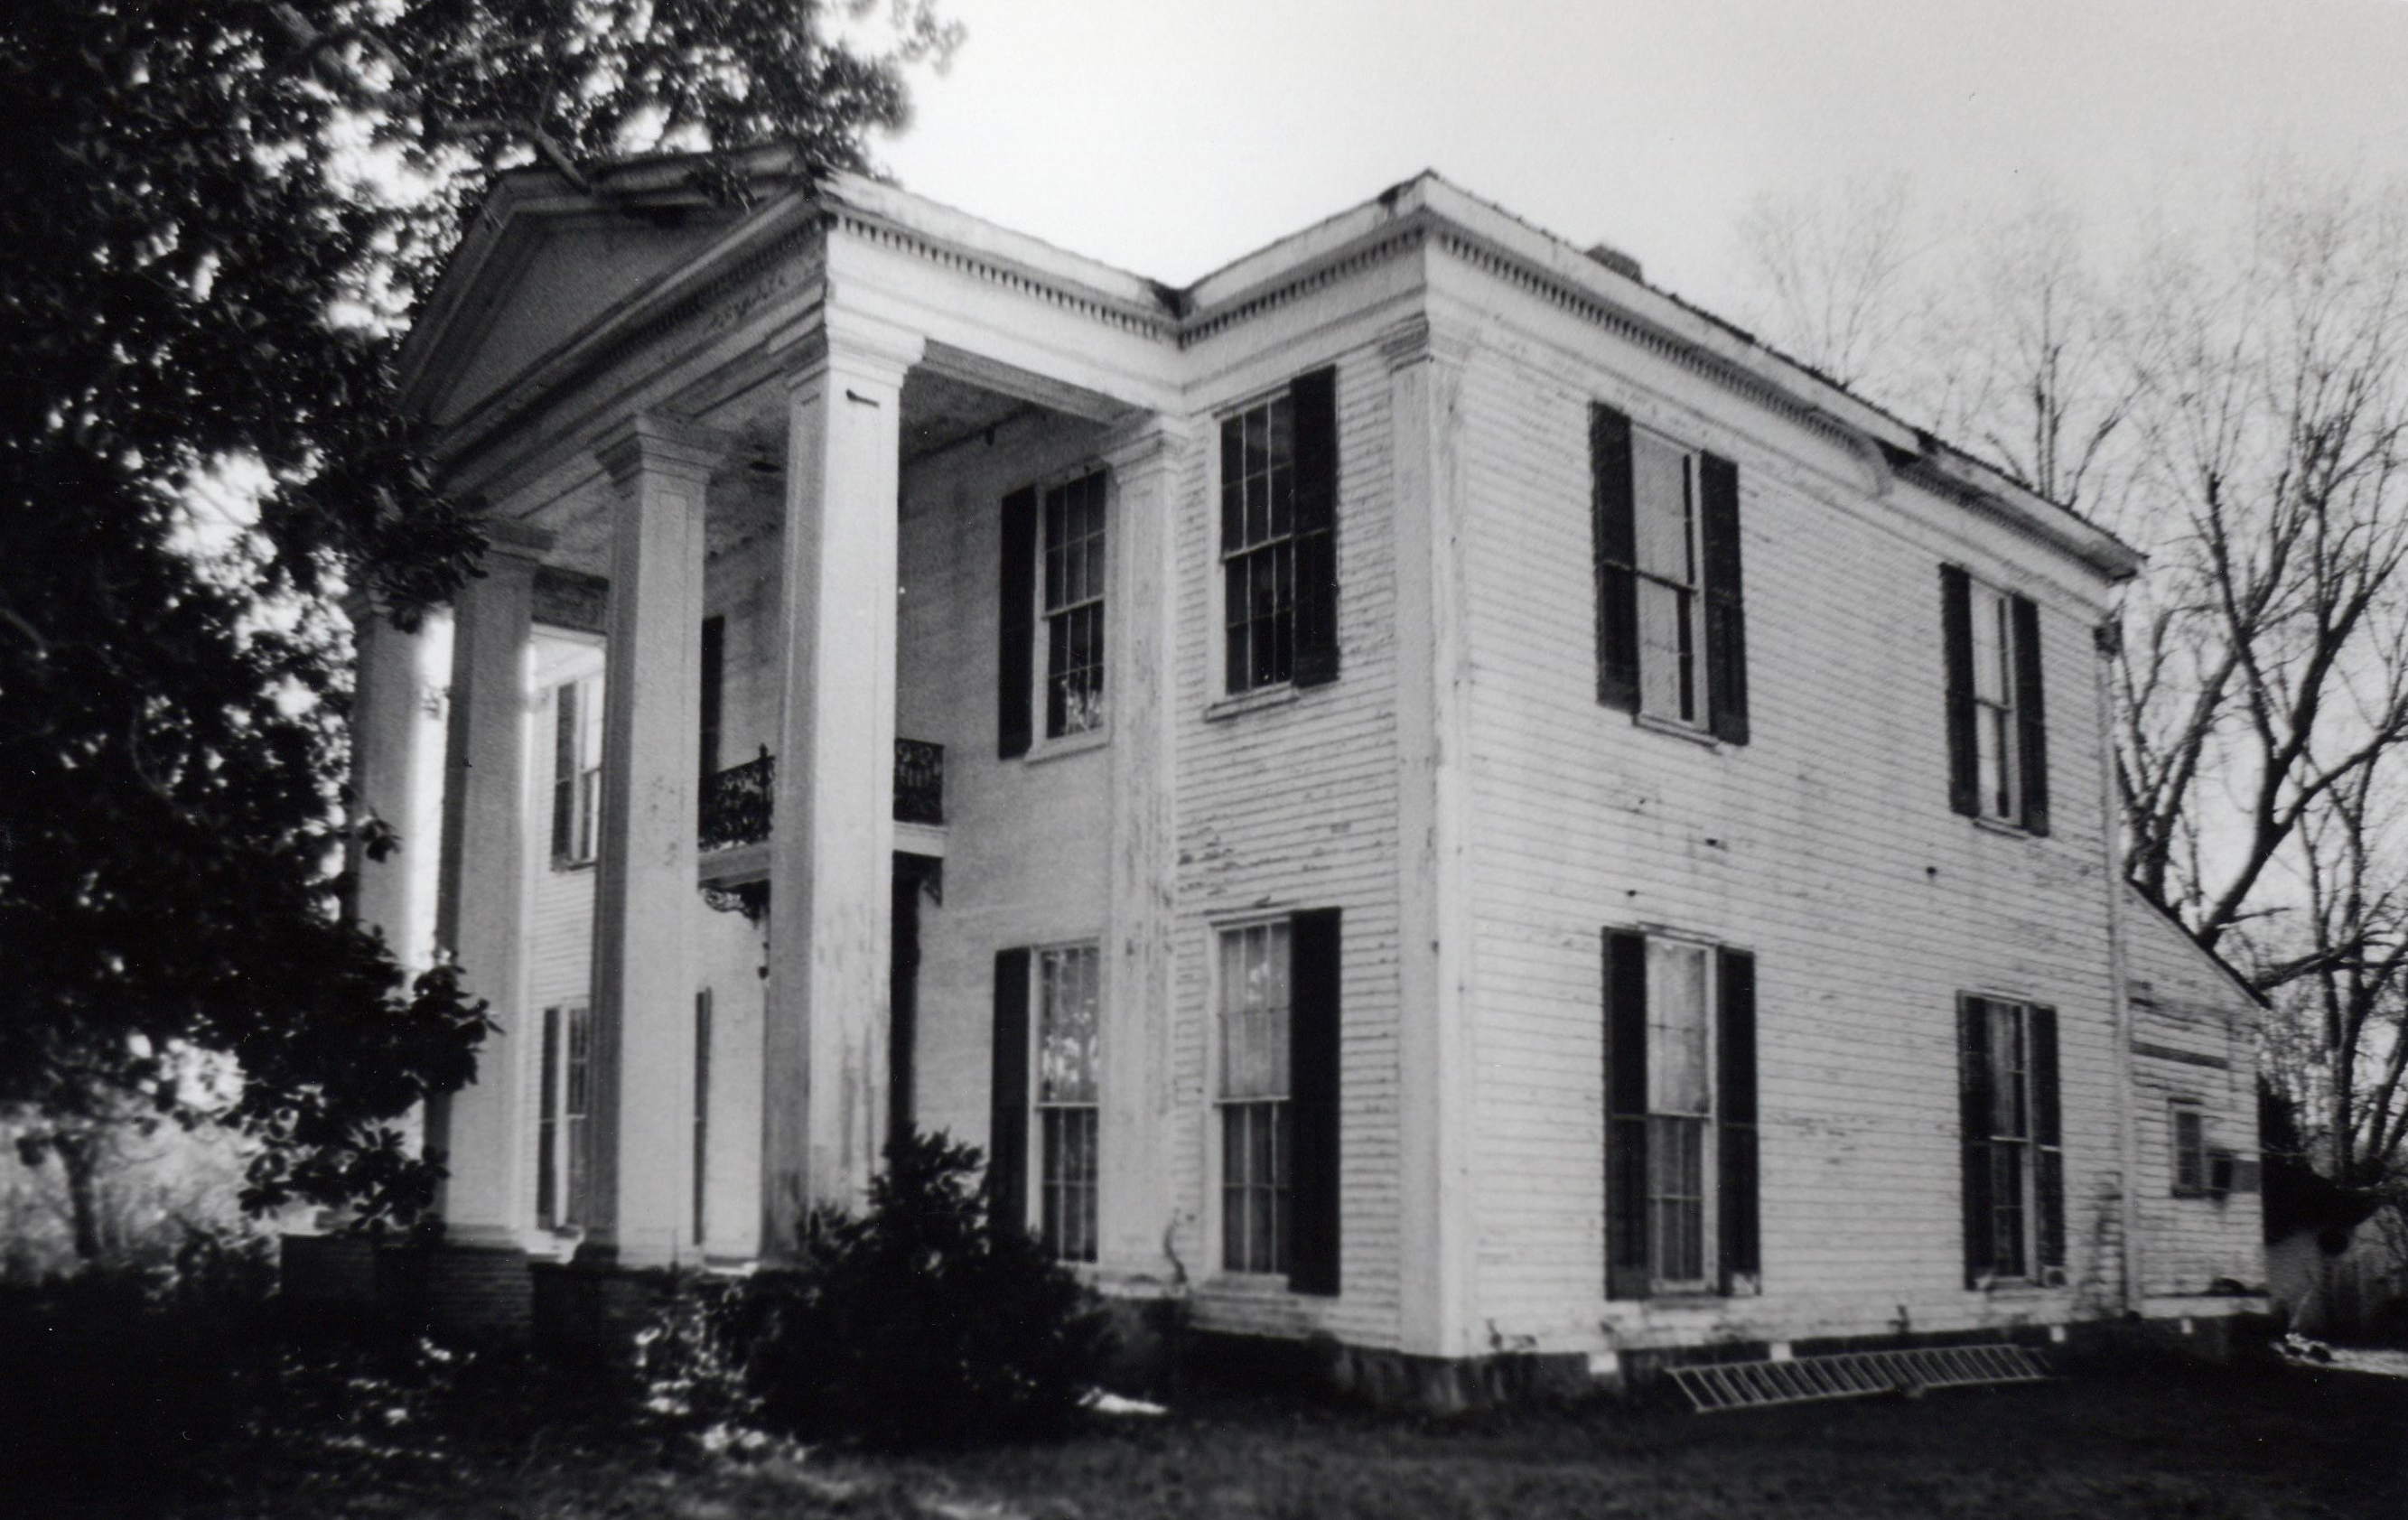 The McGehee Plantation House was built in 1856 and is today owned by McGehee descendants.